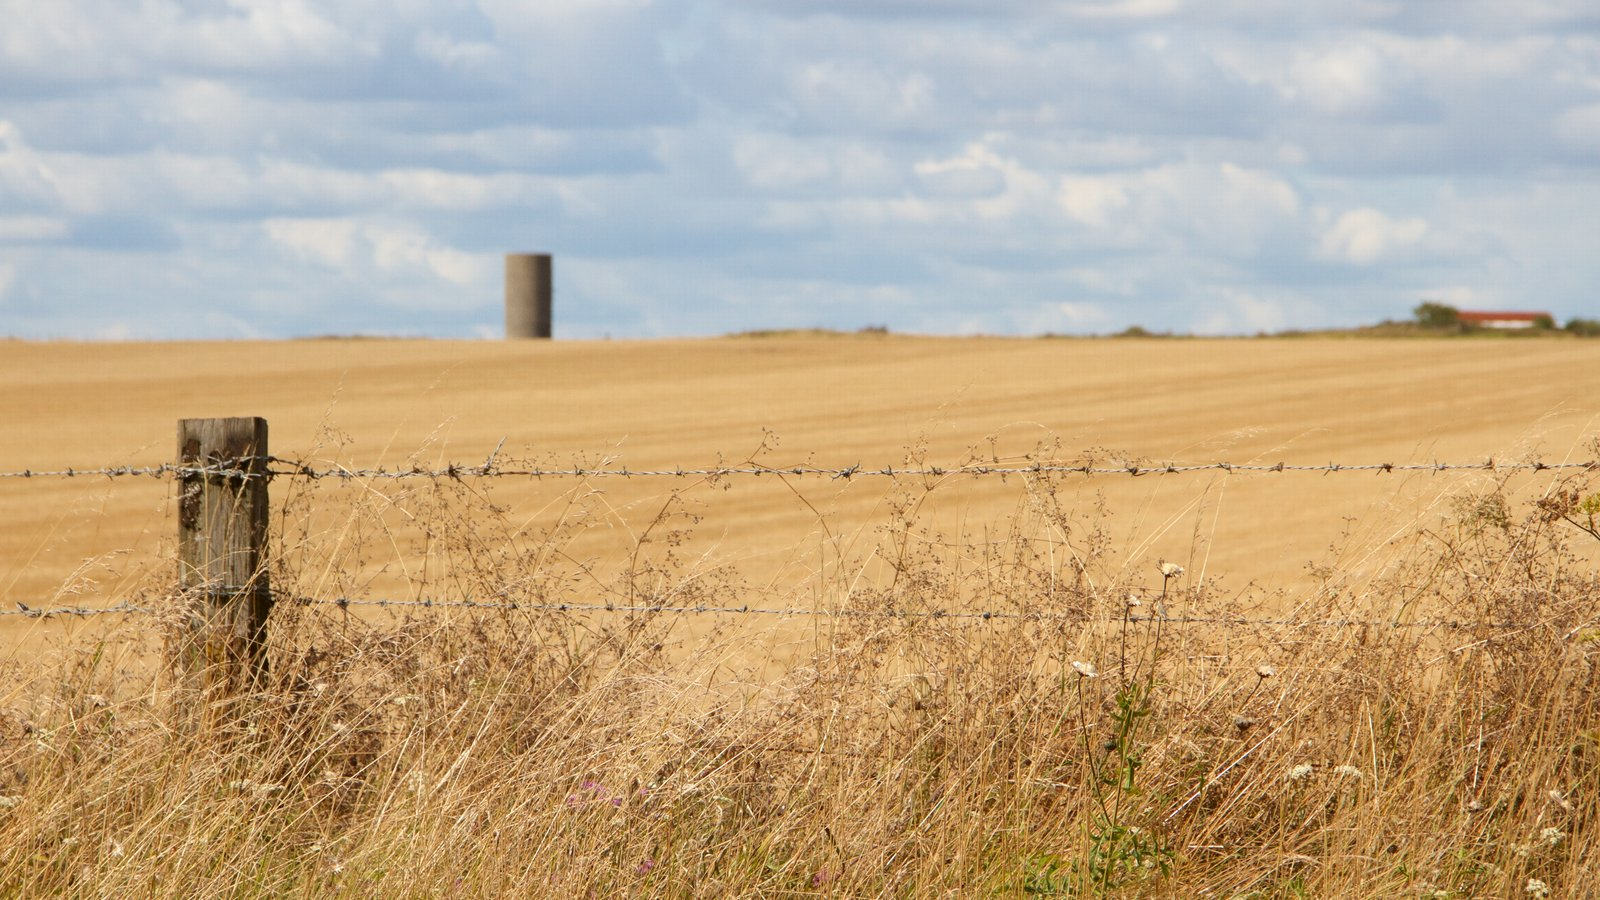 Stonehenge featuring farmland and tranquil scenes